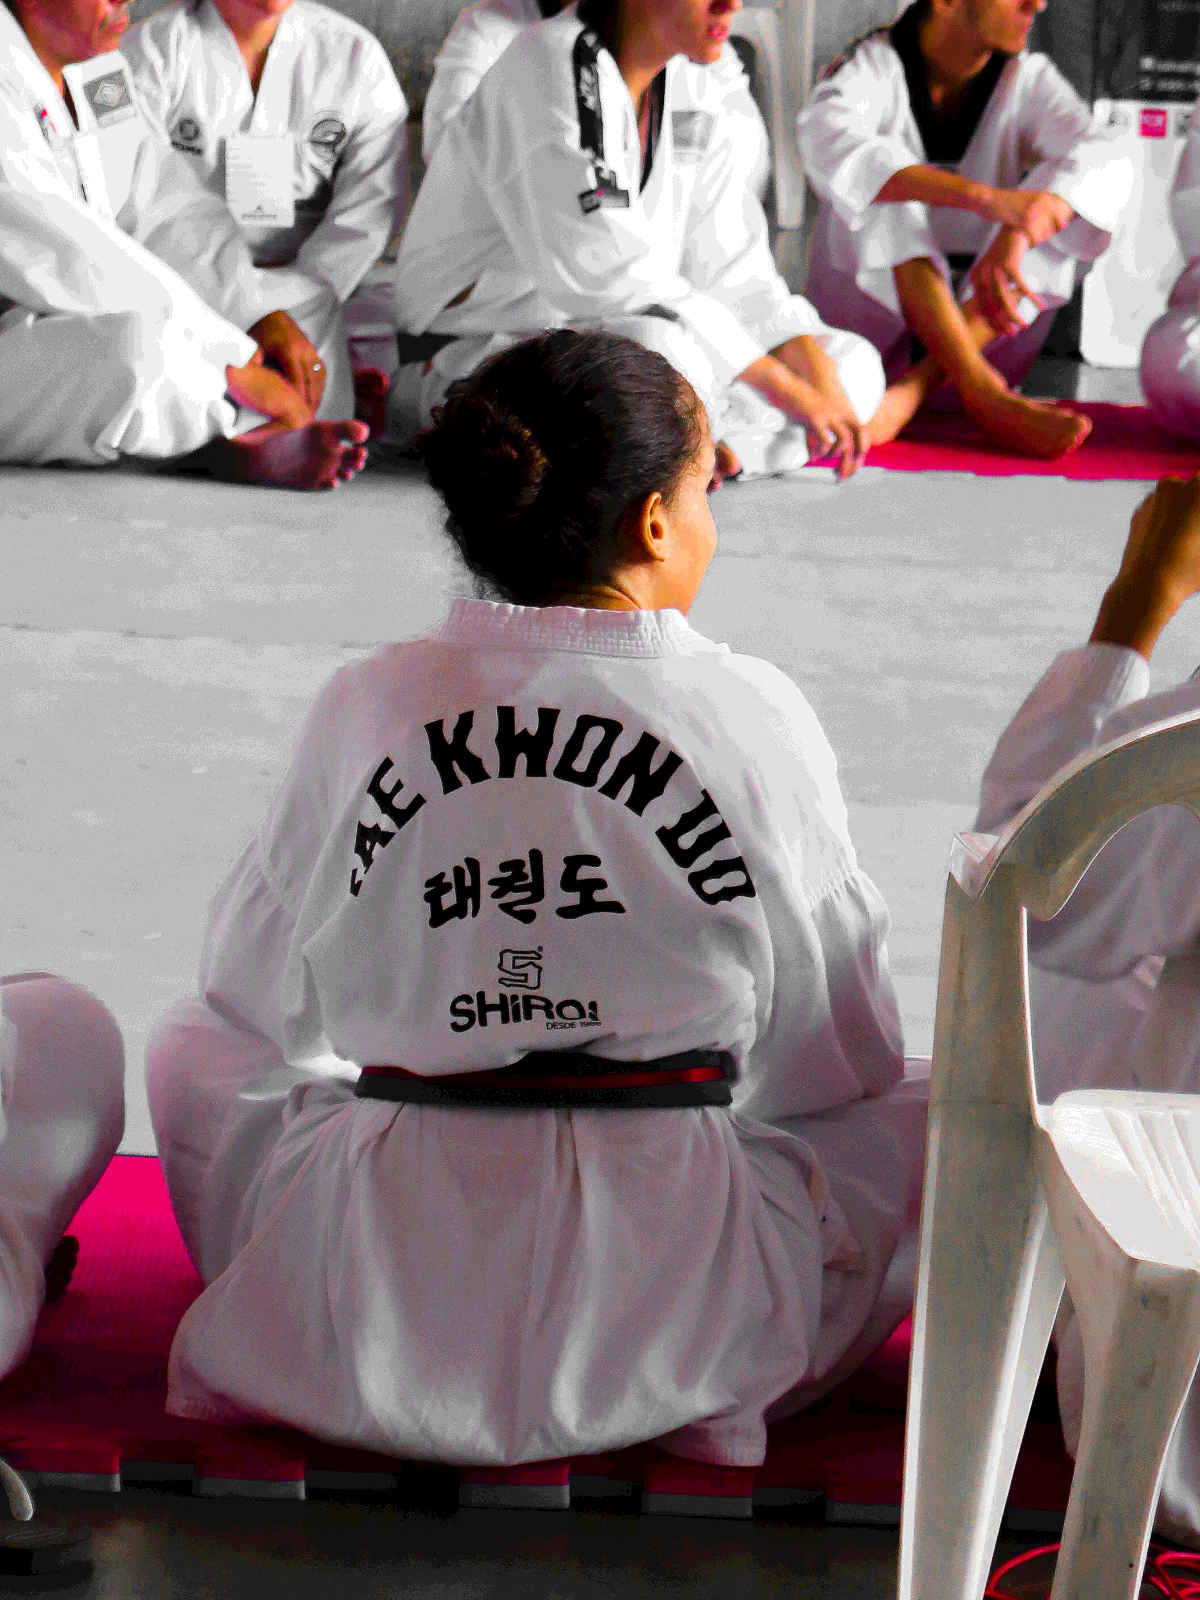 Taekwondo students sit listening to their instructor